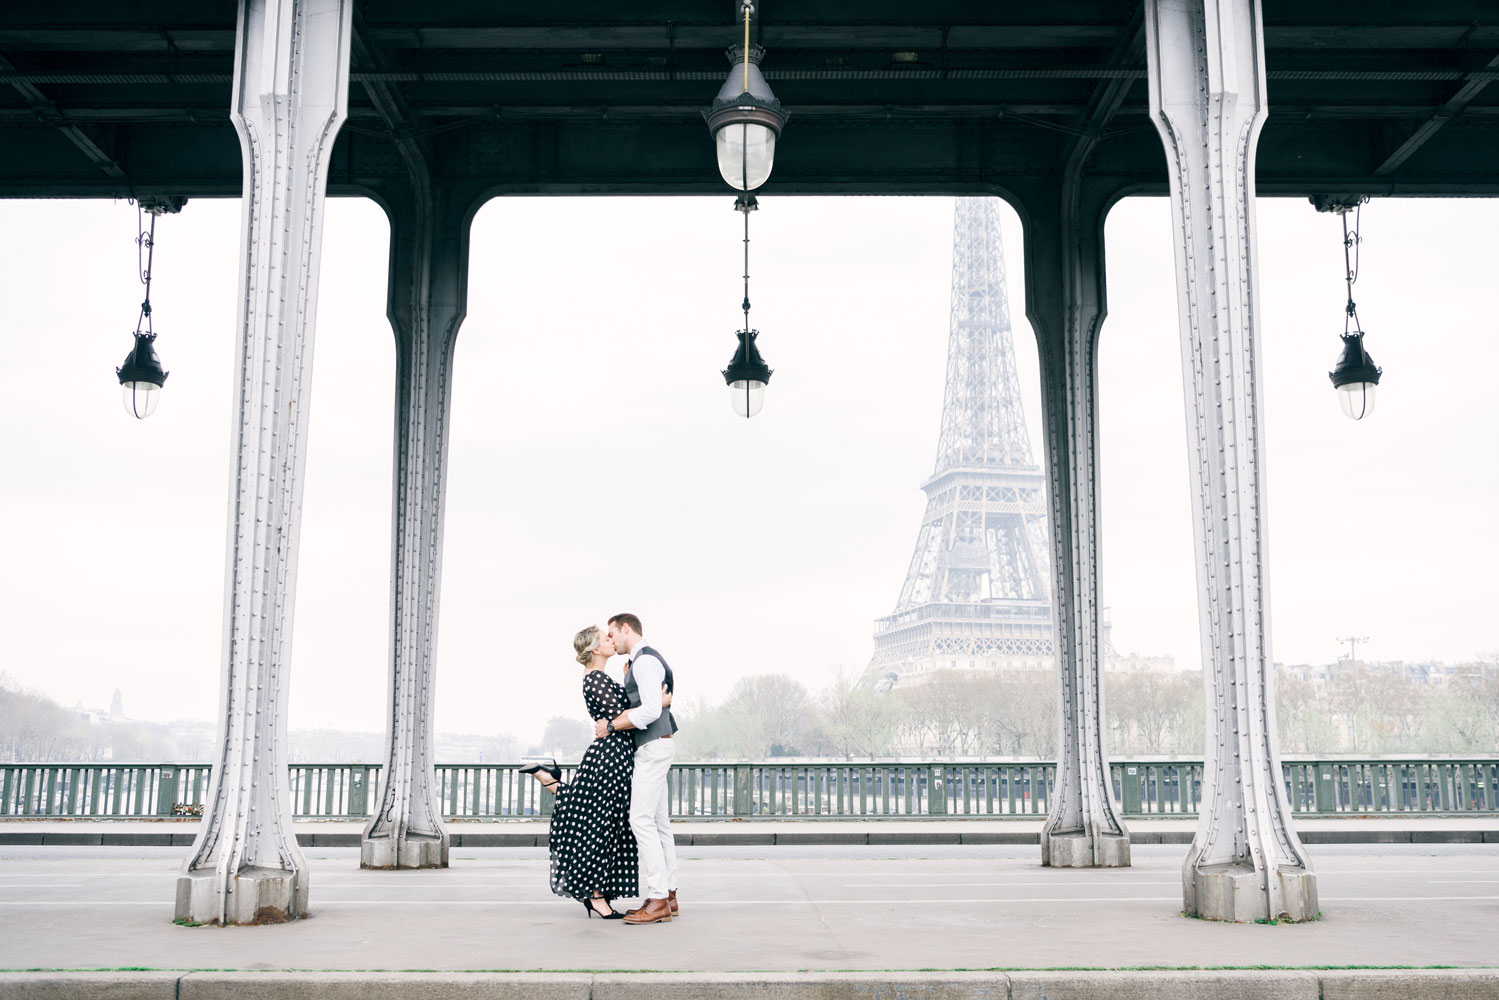 Paris Photographer - A couple kissing in front of the Eiffel Tower in Paris by Tim Moore